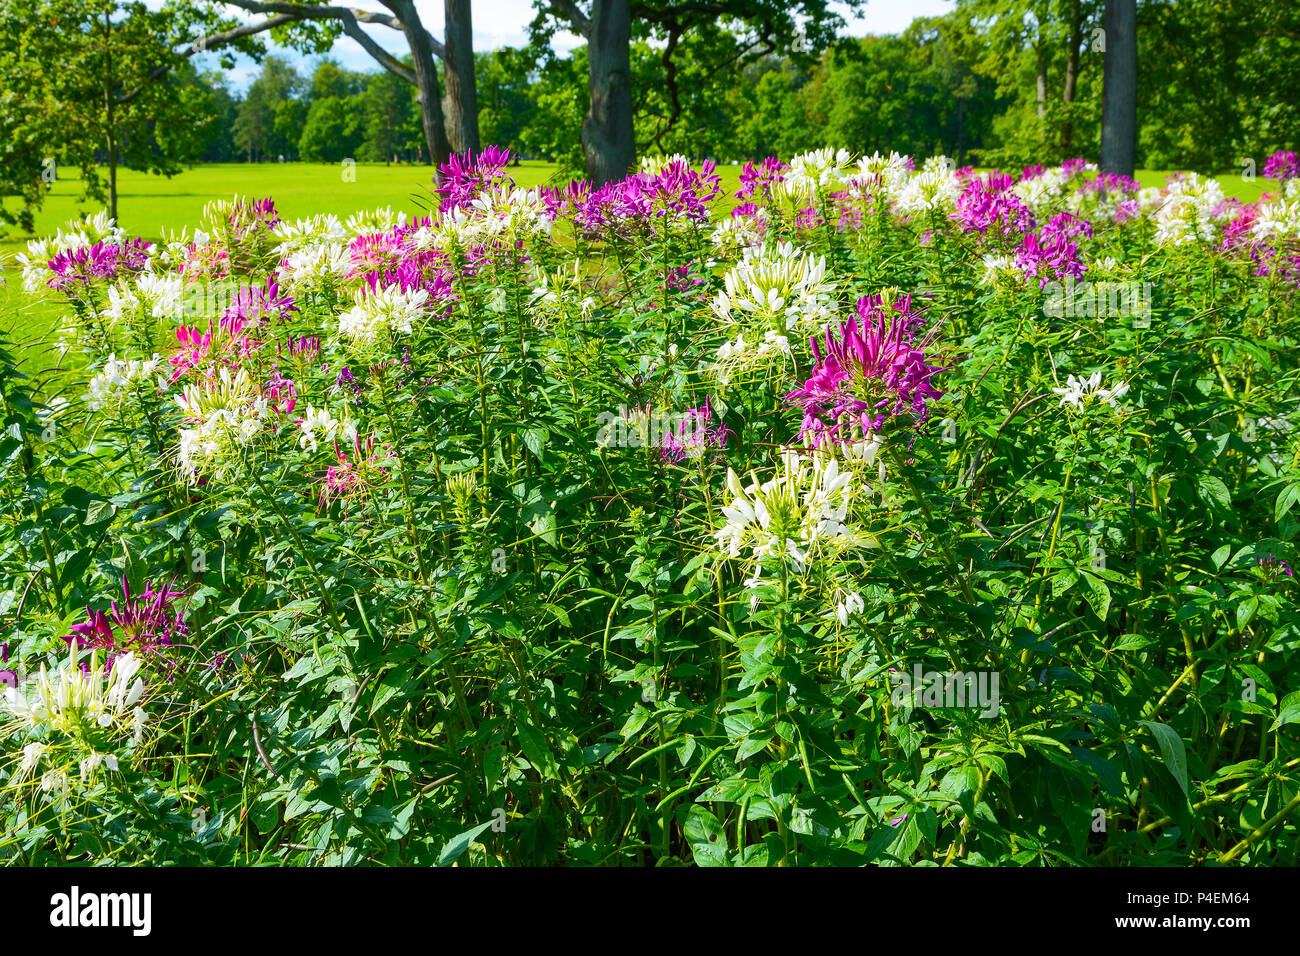 Curtain of flowering bushes of cleoma in the landscape park stock curtain of flowering bushes of cleoma in the landscape park izmirmasajfo